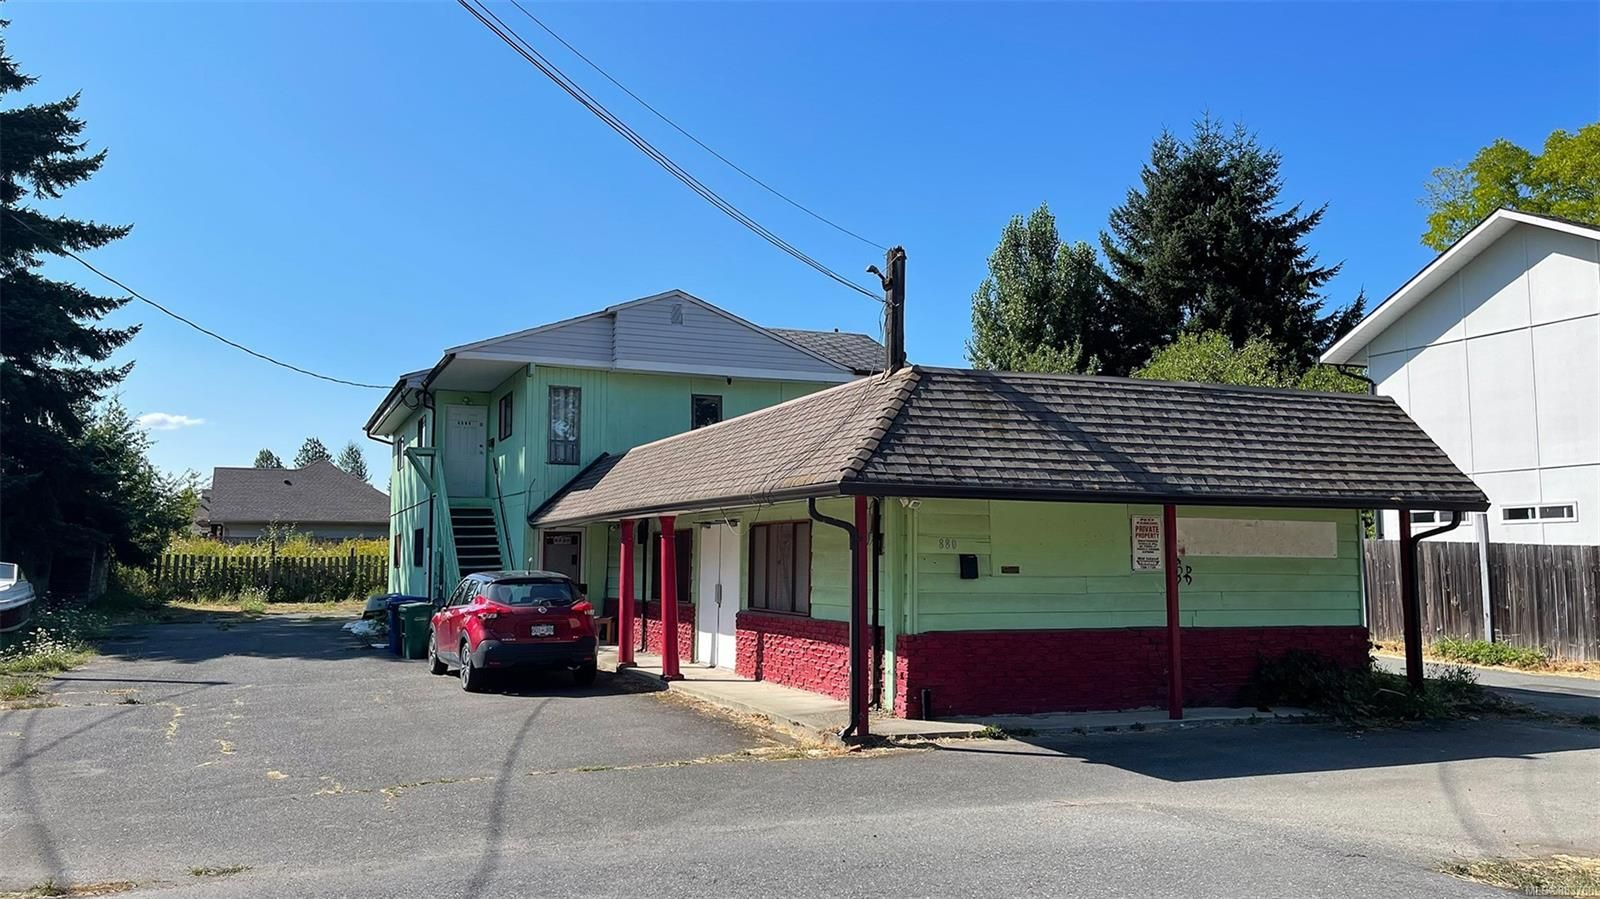 Main Photo: 880 Hecate St in : Na Old City Mixed Use for sale (Nanaimo)  : MLS®# 883768